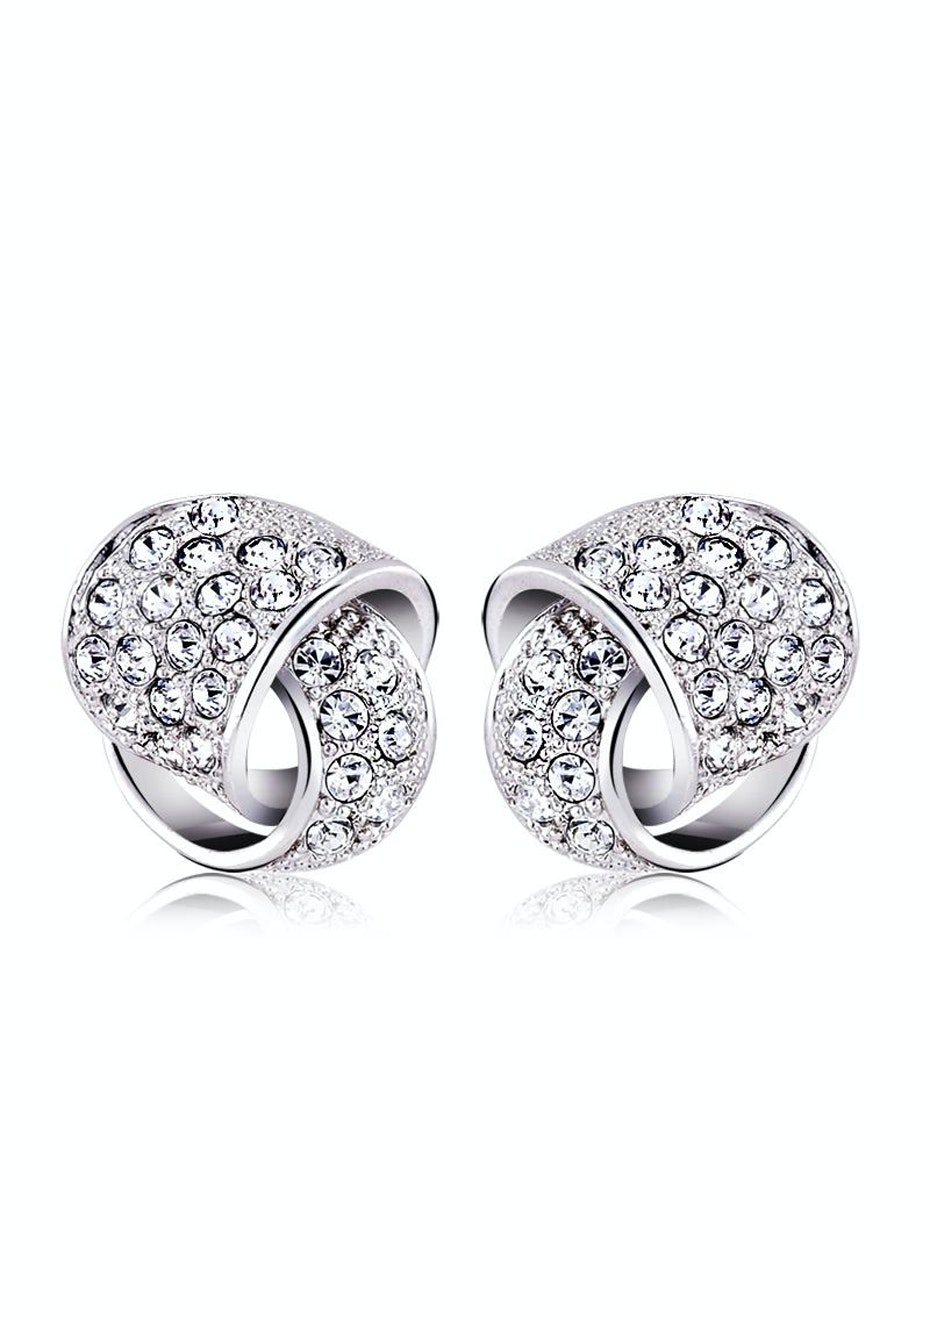 Ribbon Stud Earrings Embellished with Crystals from Swarovski